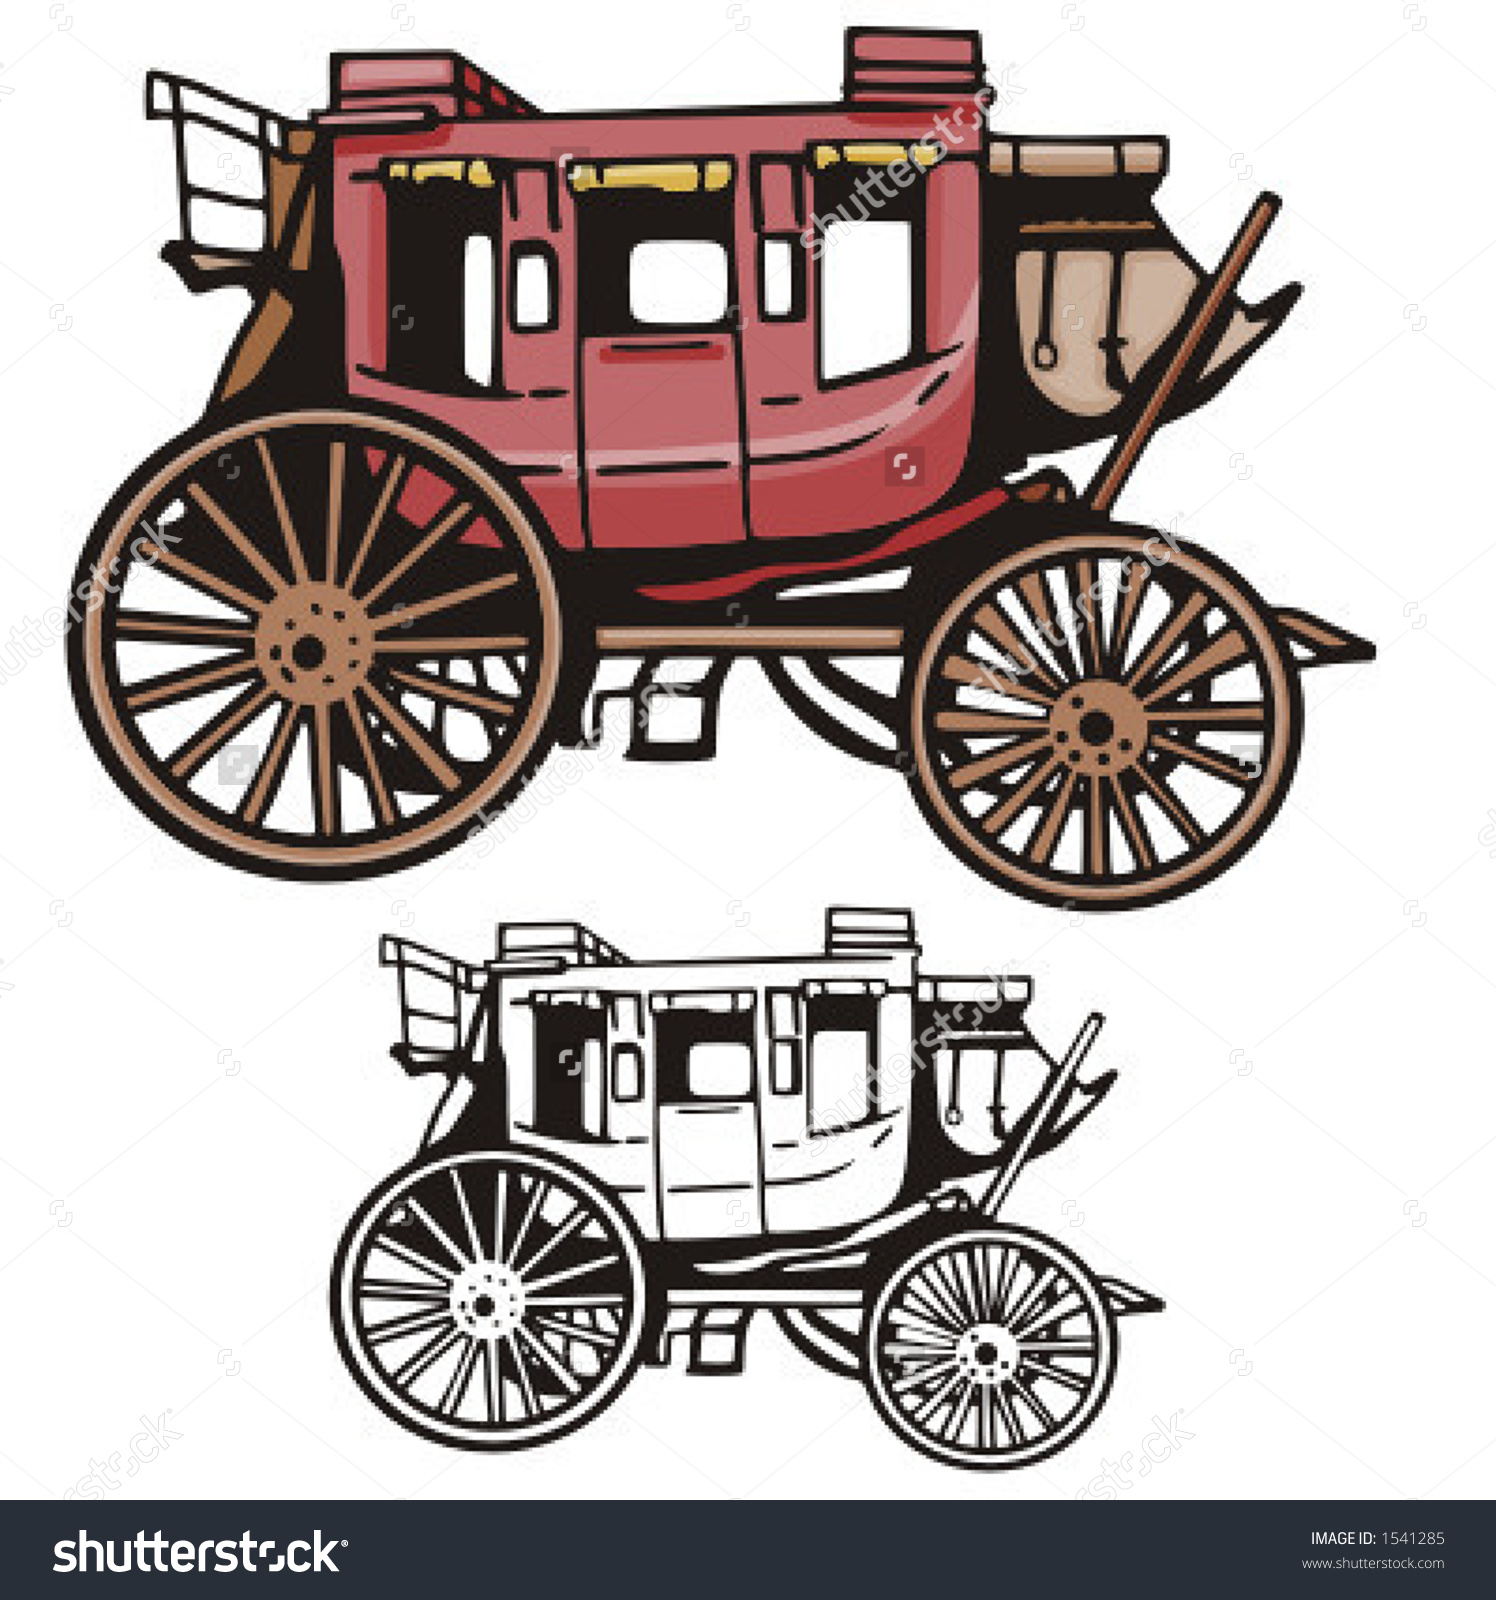 Illustration Western Stage Coach Stock Vector 1541285.